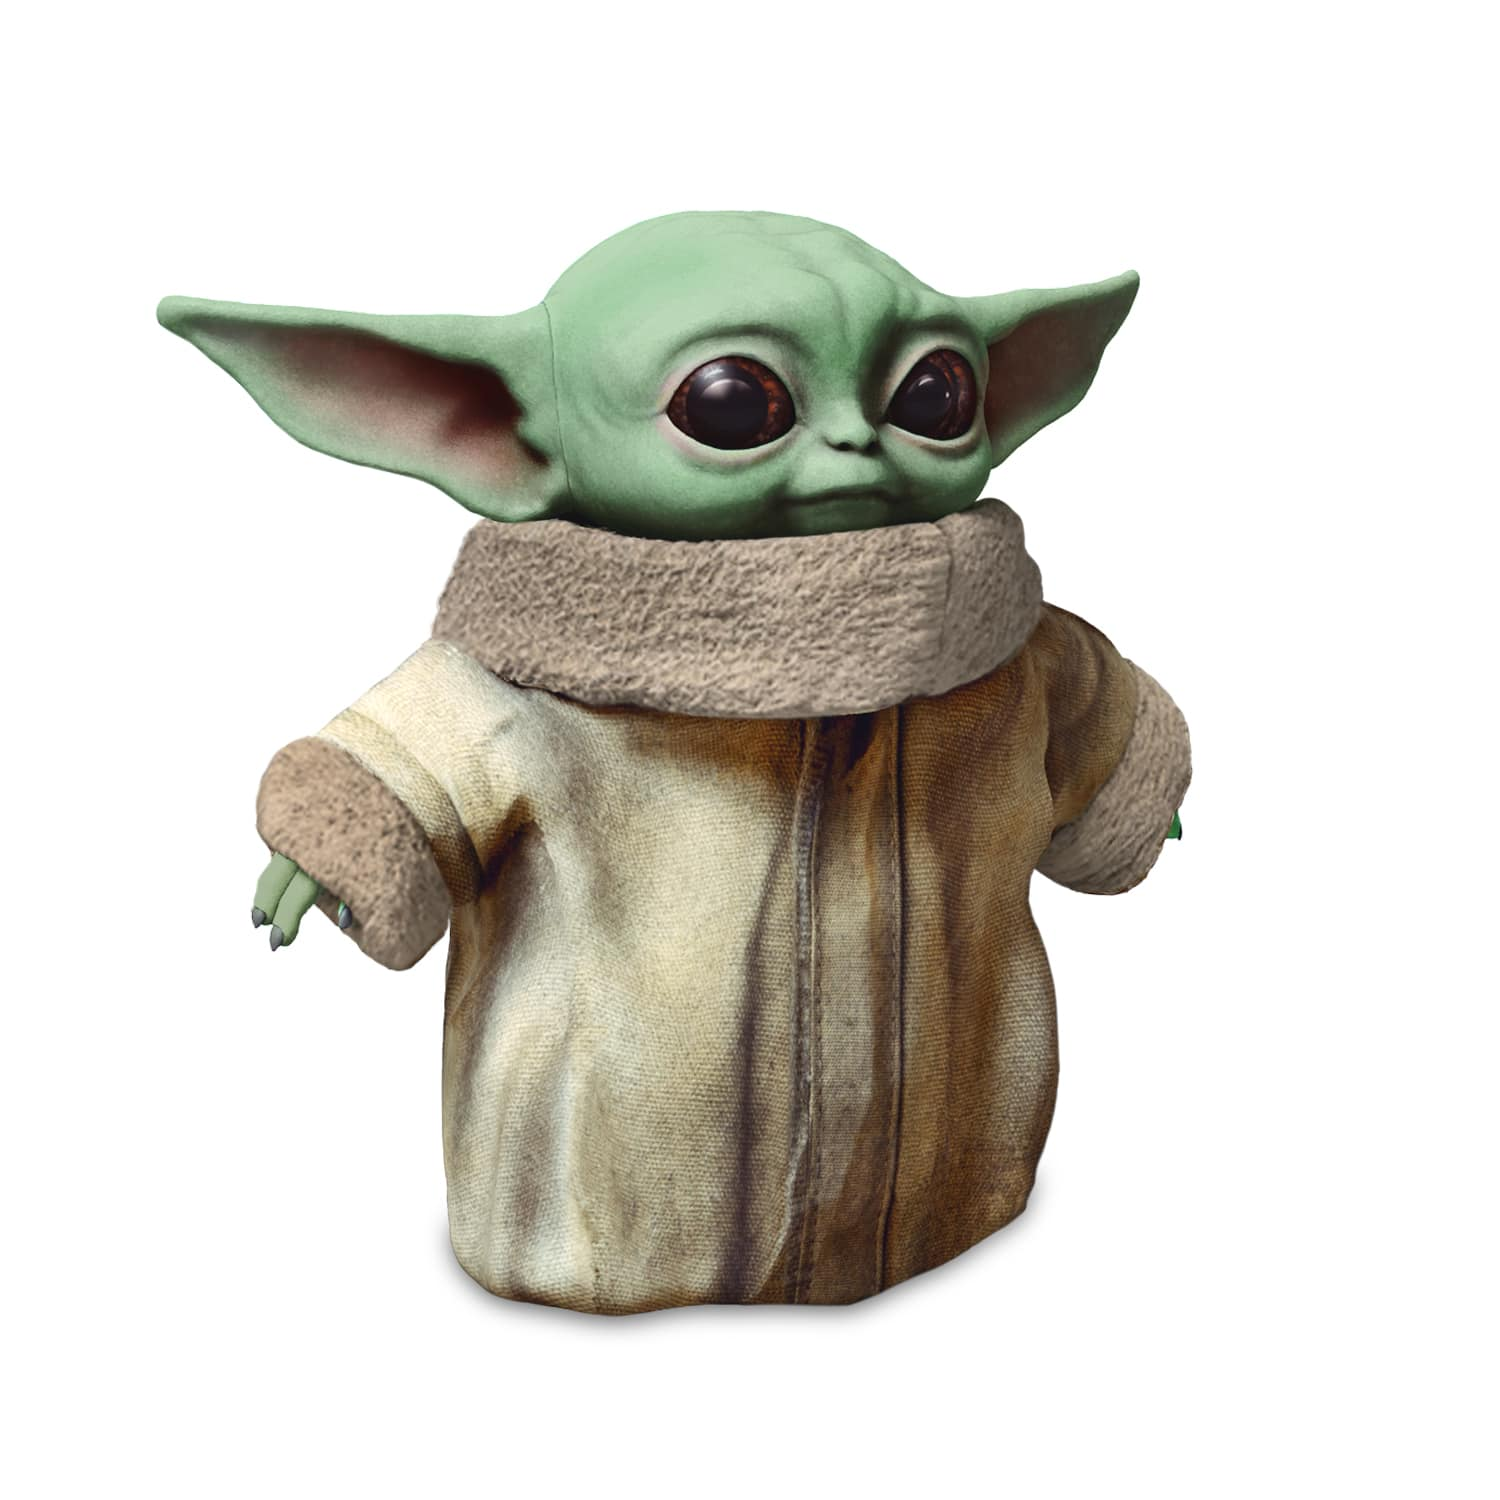 "Star Wars The Child 11"" Plush - preorder $24.99 (baby yoda)"